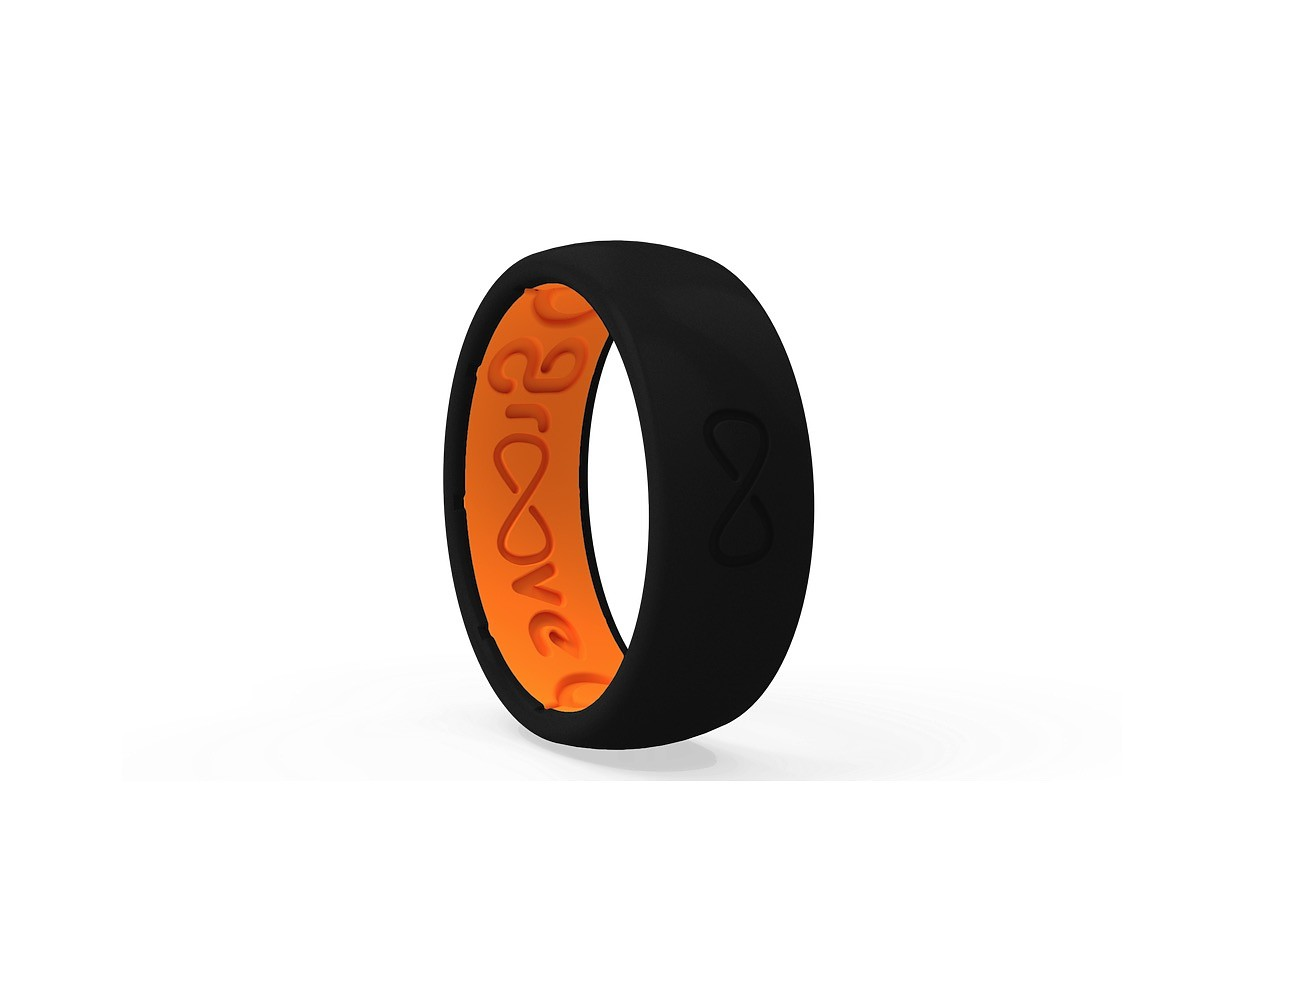 Groove Silicone Rings – Active, Silicone Wedding Bands that Breathe